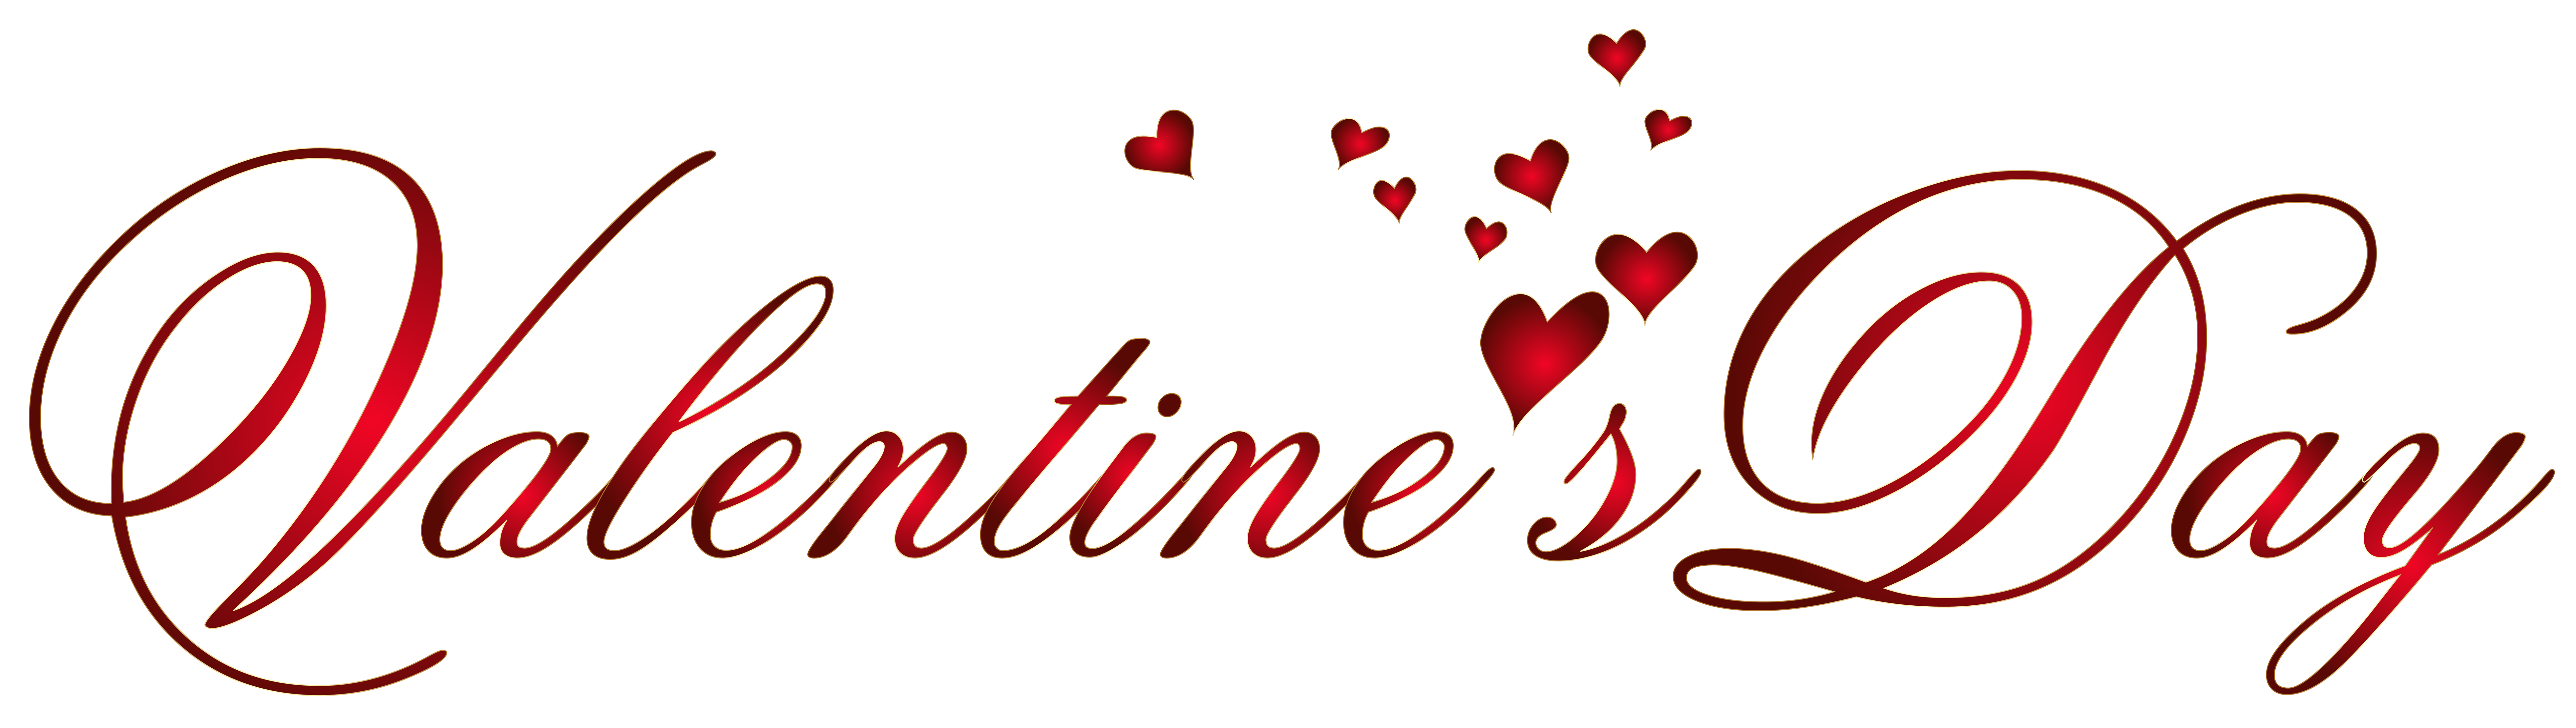 valentines-day-clipart-transparent-18